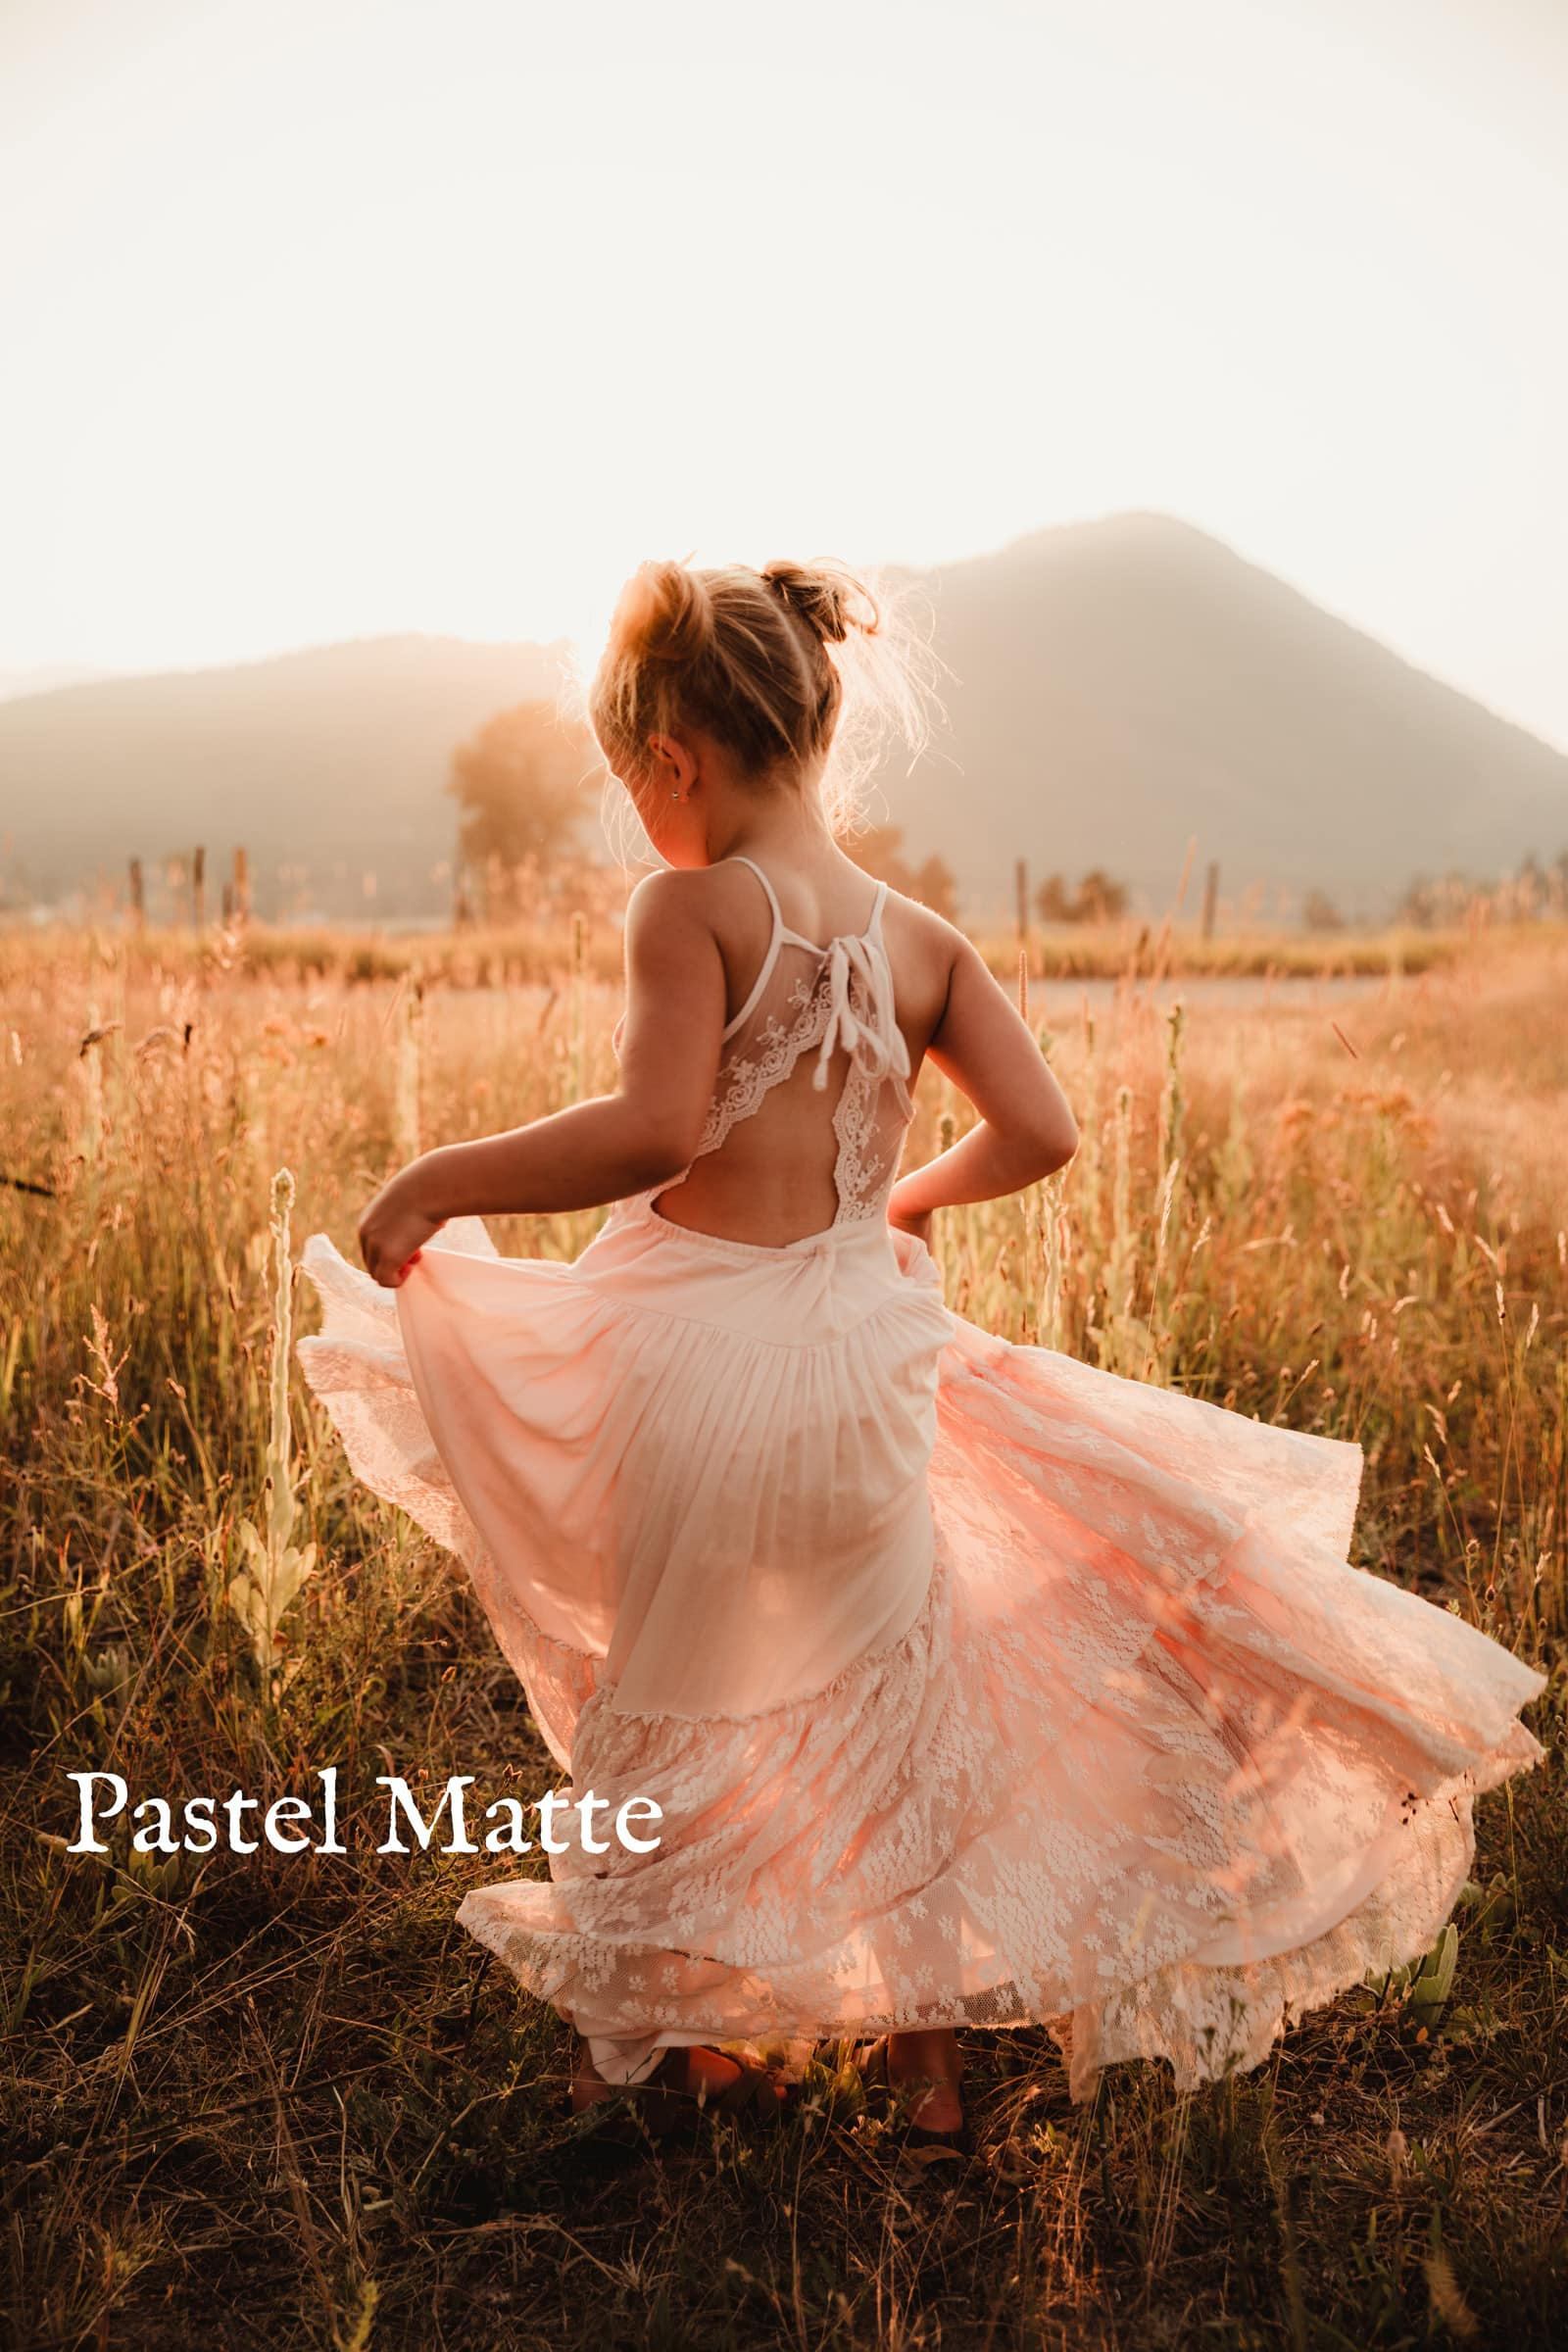 pastel matte lightroom presets